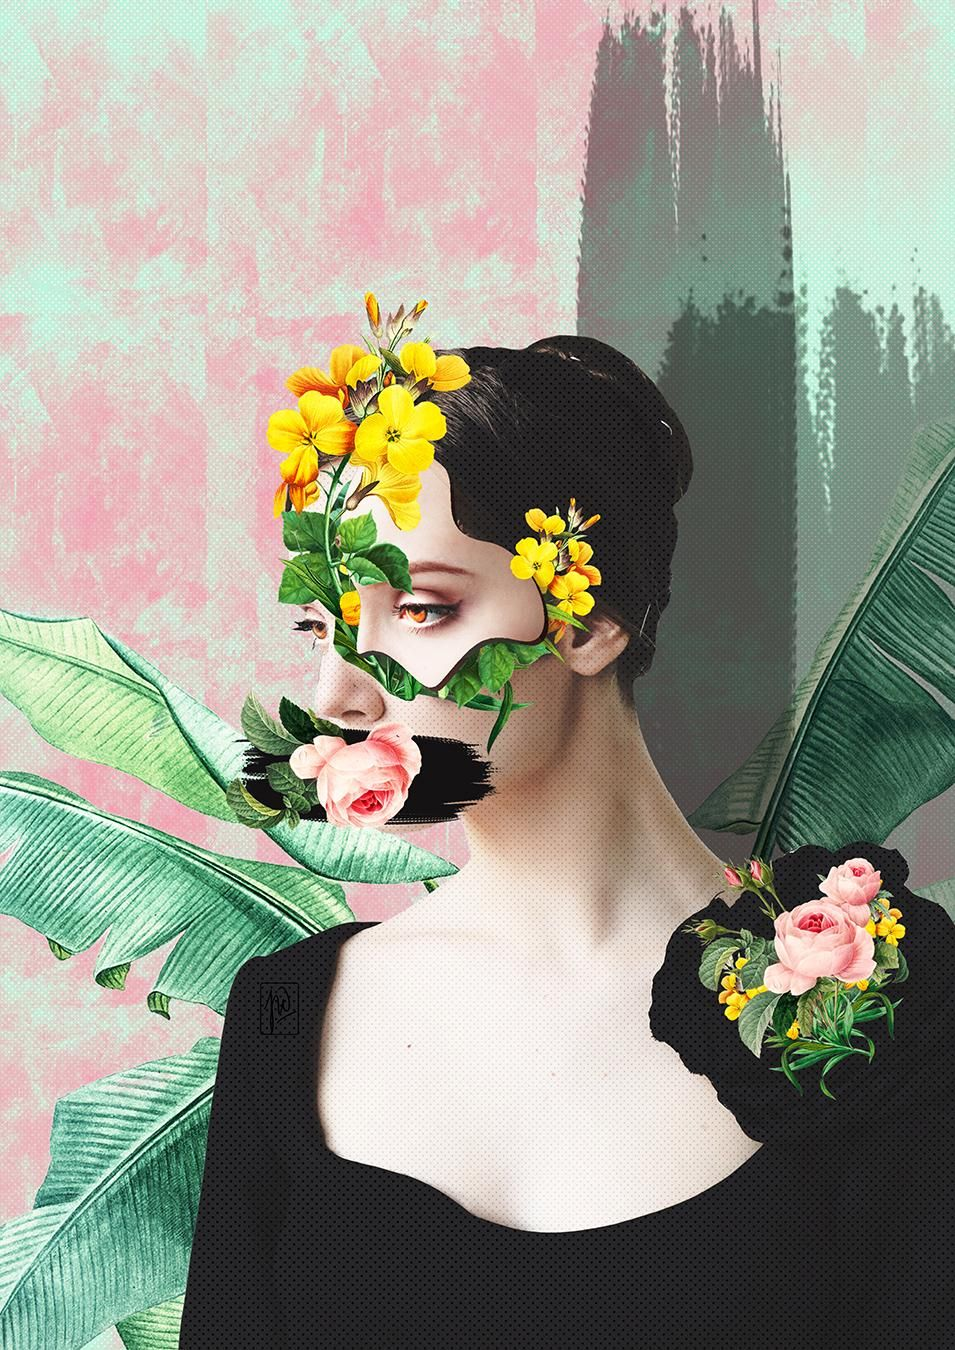 Floral Collage Portraits - image 3 - student project